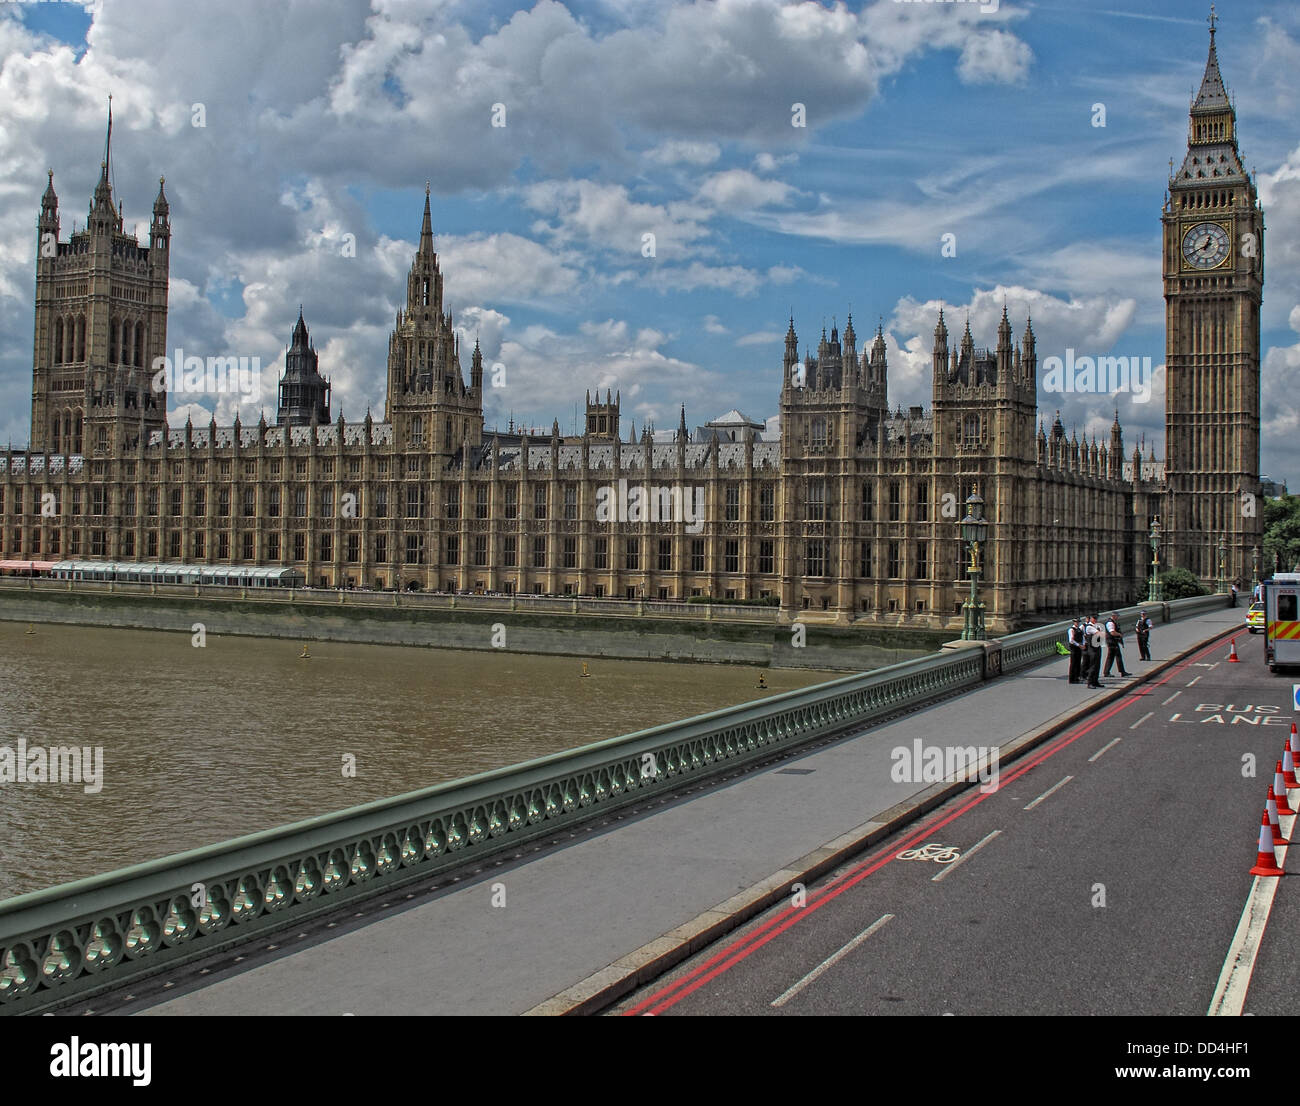 Palace of Westminster, from Westminster Bridge, coming north, London, South East England, SW1A 0AA - Stock Image